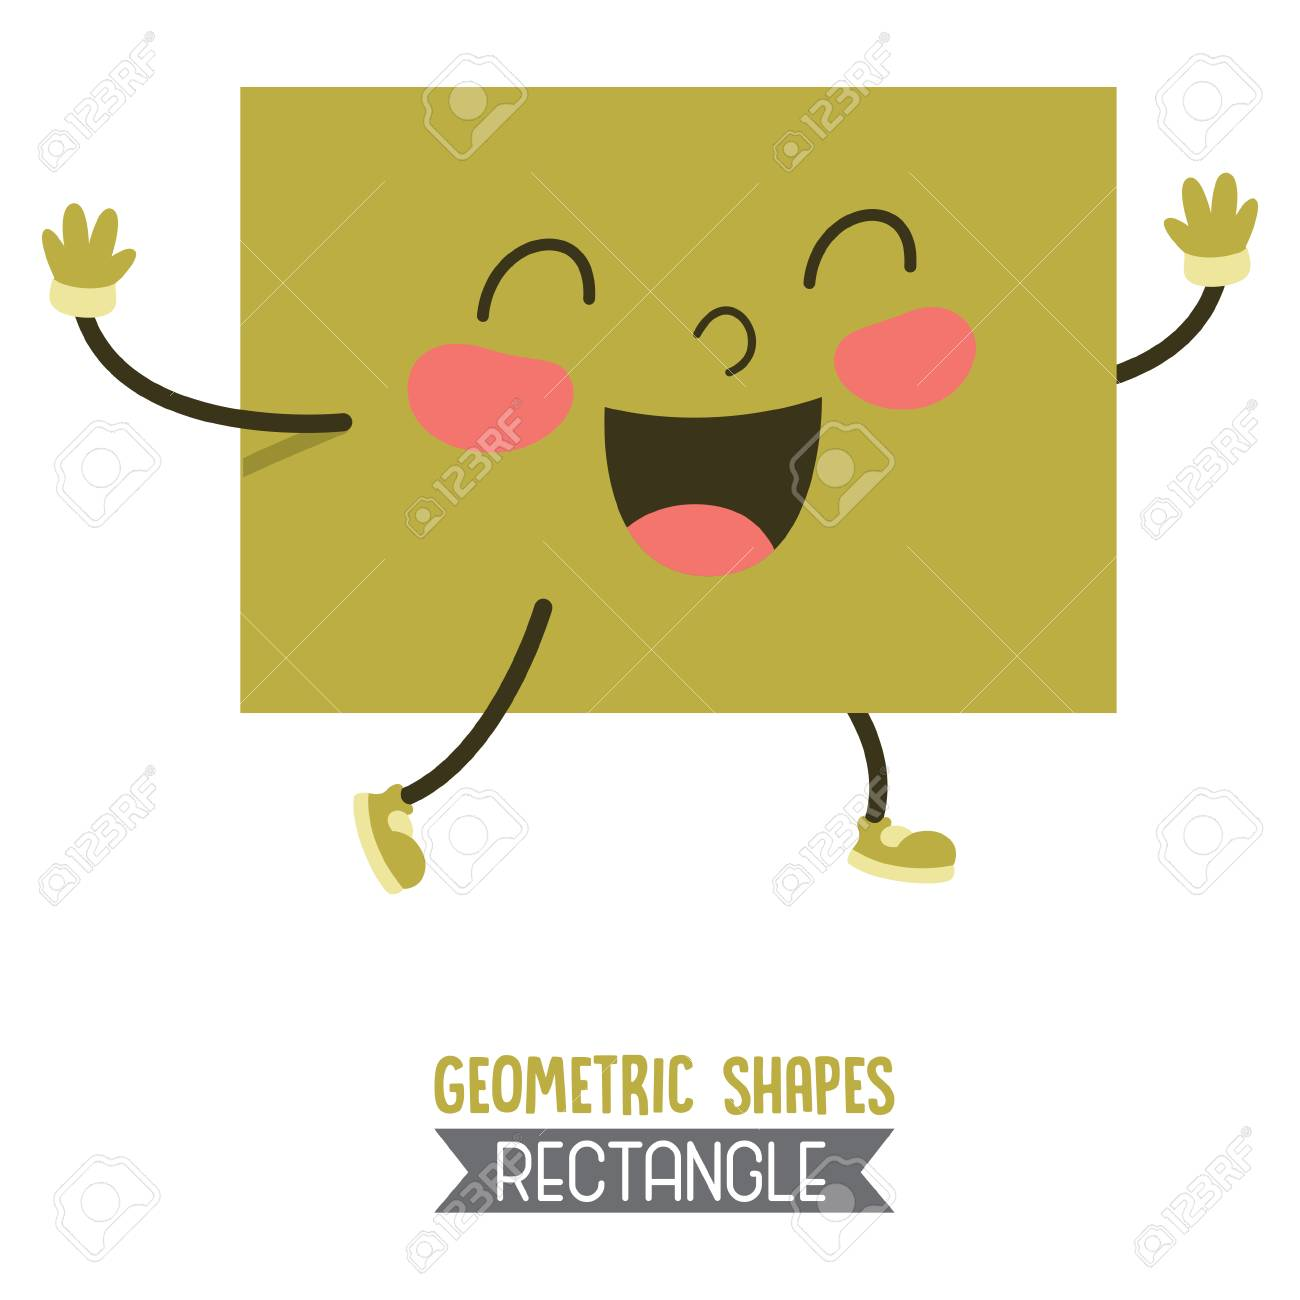 A Vector Illustration Of Rectangle Geometric Shape Royalty Free Cliparts Vectors And Stock Illustration Image 100548725